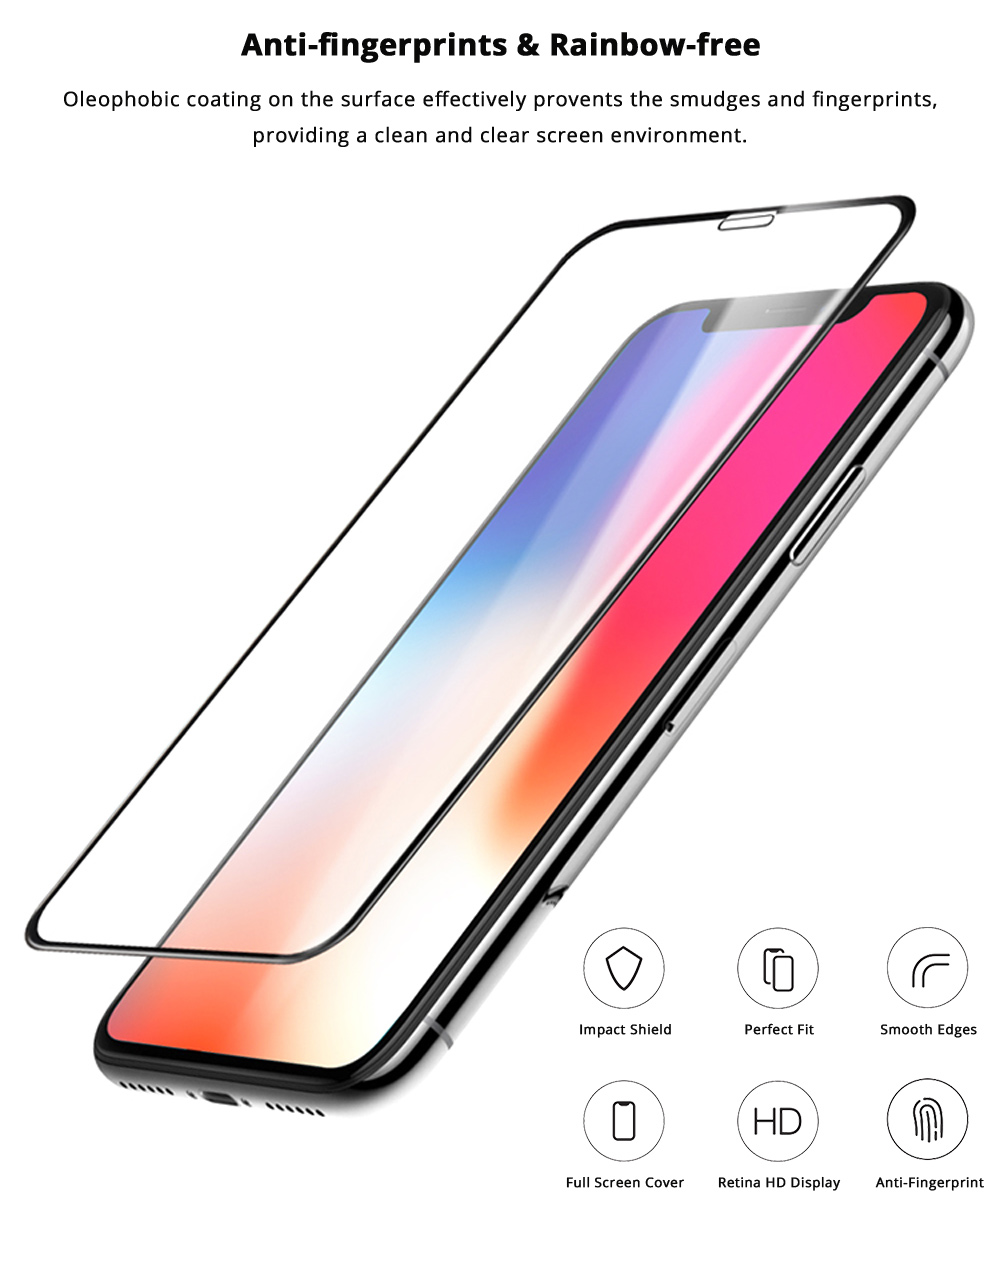 Impact Shield Anti-glare Precise-align Perfect Fit Screen Protector for iPhone X, iPhone 8/8 Plus, iPhone 7/7 Plus Protective Screen Skin Protector 6